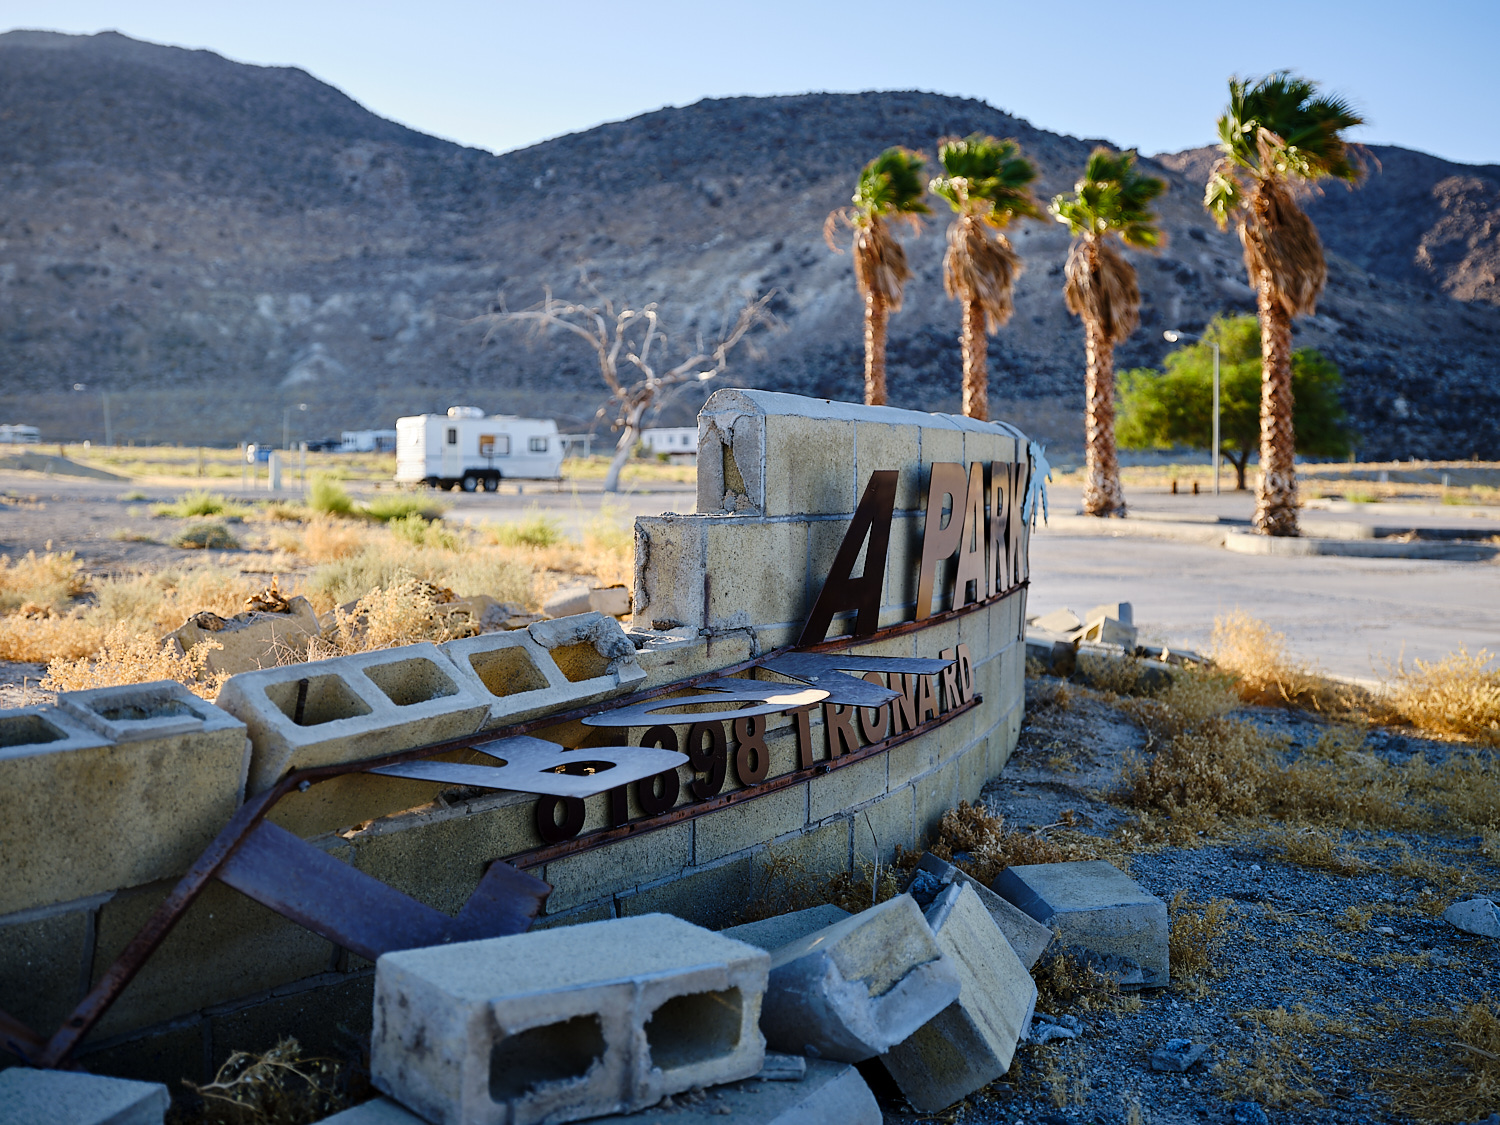 Earthquake damage at Trona Mobile Home & RV Park, Trona, Ca. | Osceola Refetoff